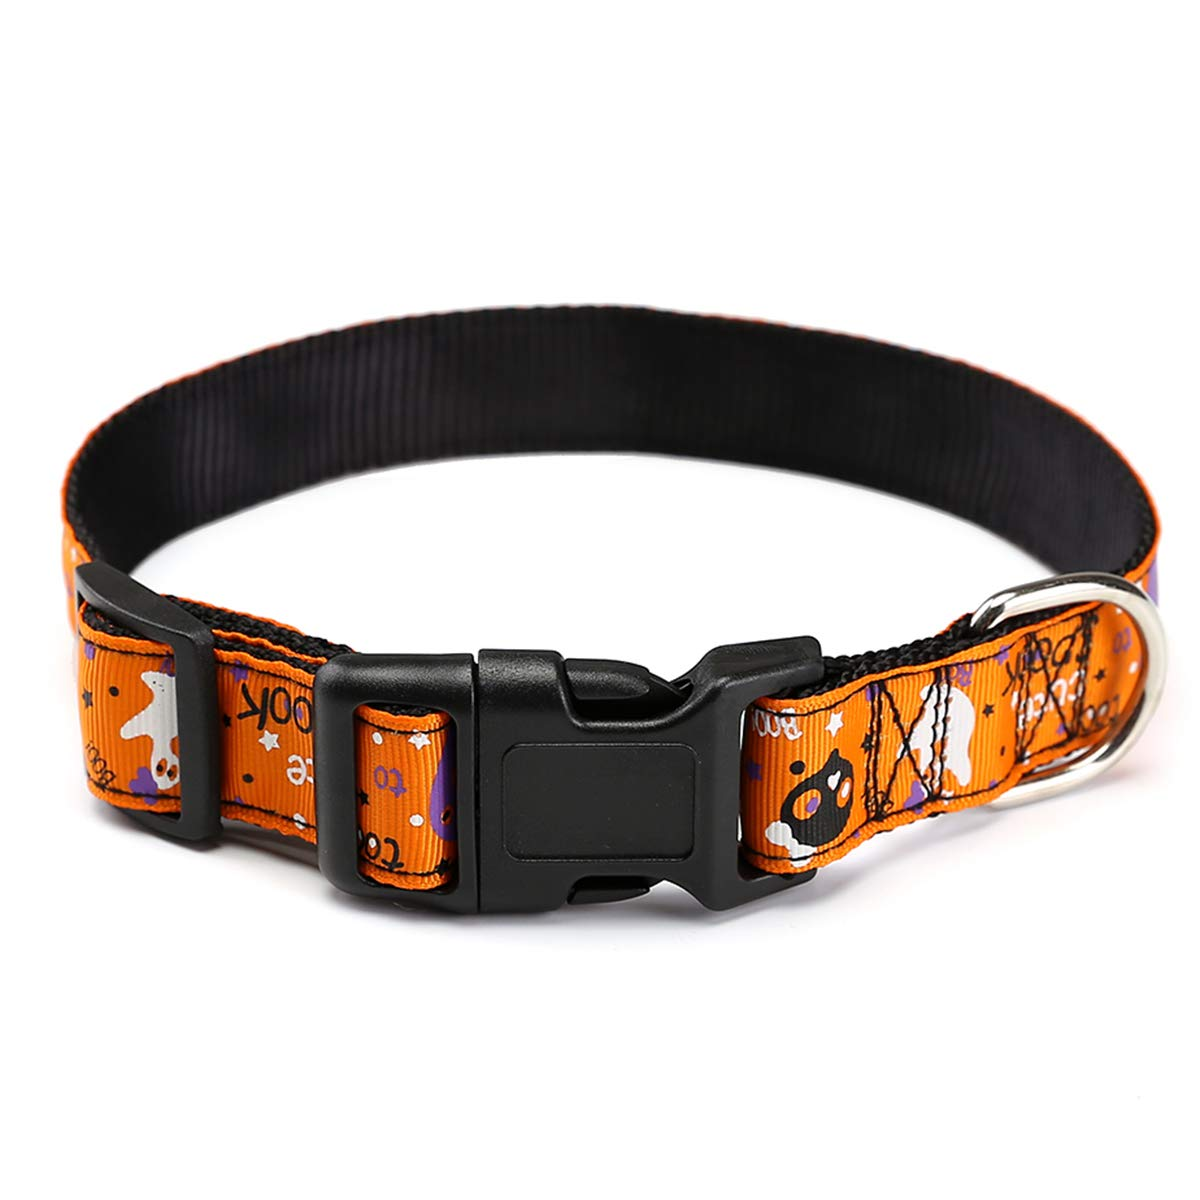 orange 1 M orange 1 M Adorrable Dog Collar for Halloween Adjustable Collar Cover for Pet Collars with Decoration,orange1,Neck 15.7 -19.7 ,45lb